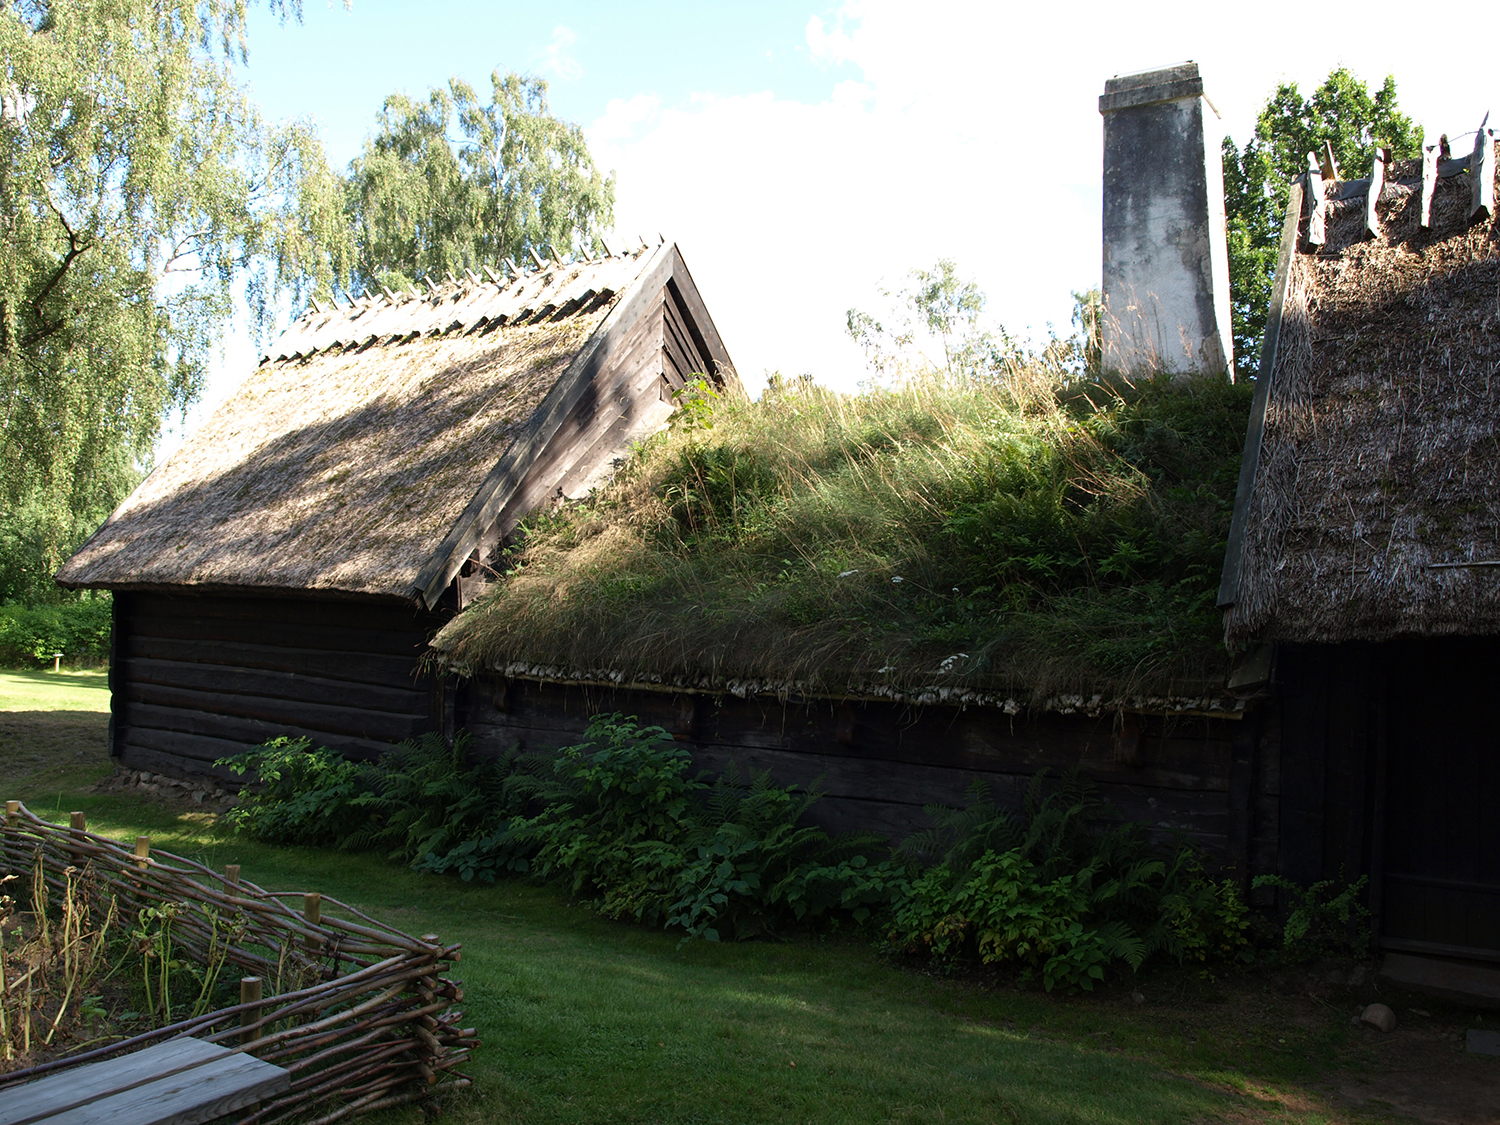 The ryggåstugga, the typical peasant cottage in Halland, at the open air museum, Hallands Art Museum